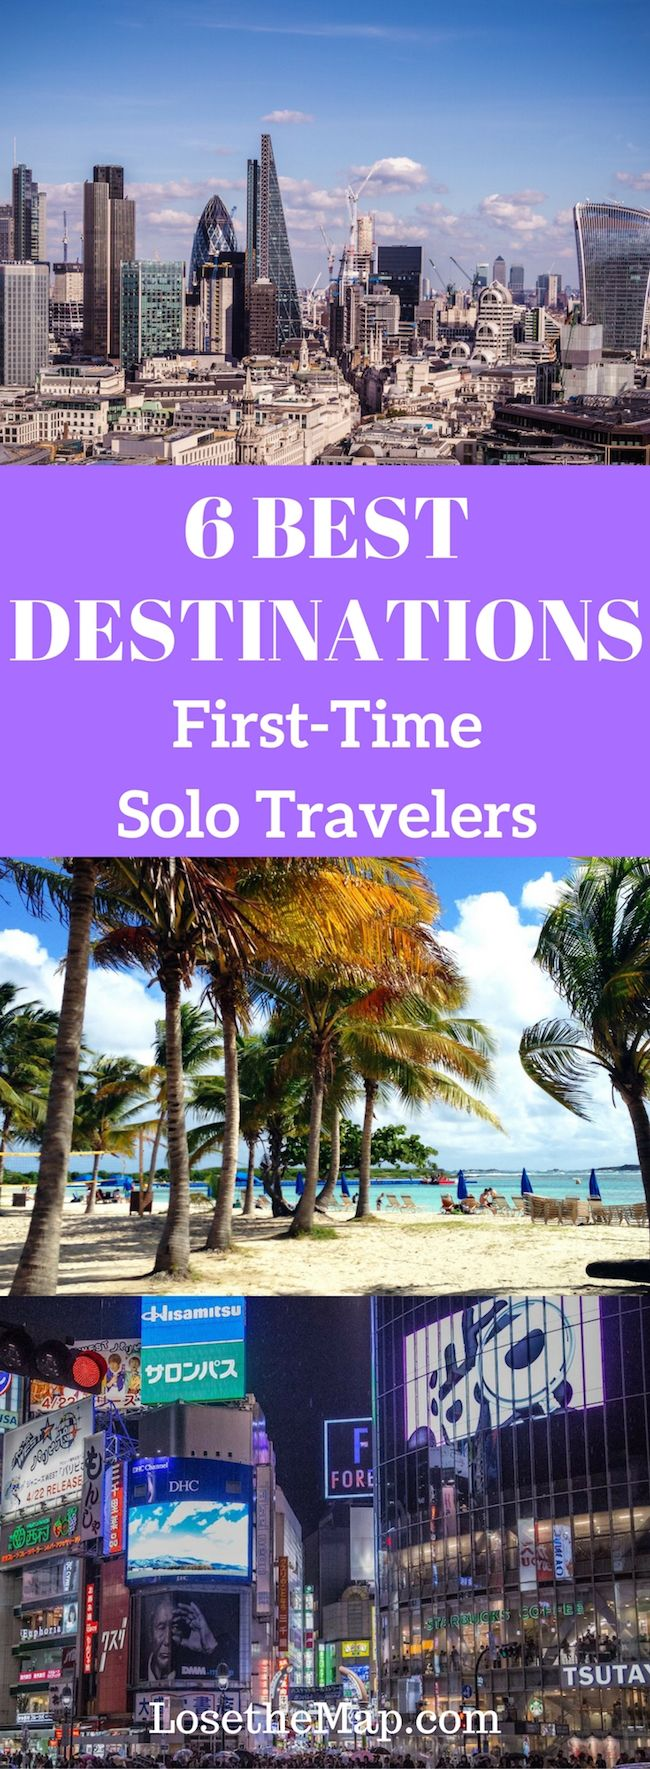 Want to plan your first solo trip abroad, but not sure where to go?  Whether you're looking for a beach trip, a city excursion or a cultural getaway, here are the best destinations for your first solo adventure!  Which solo travel destination do you want to visit first?